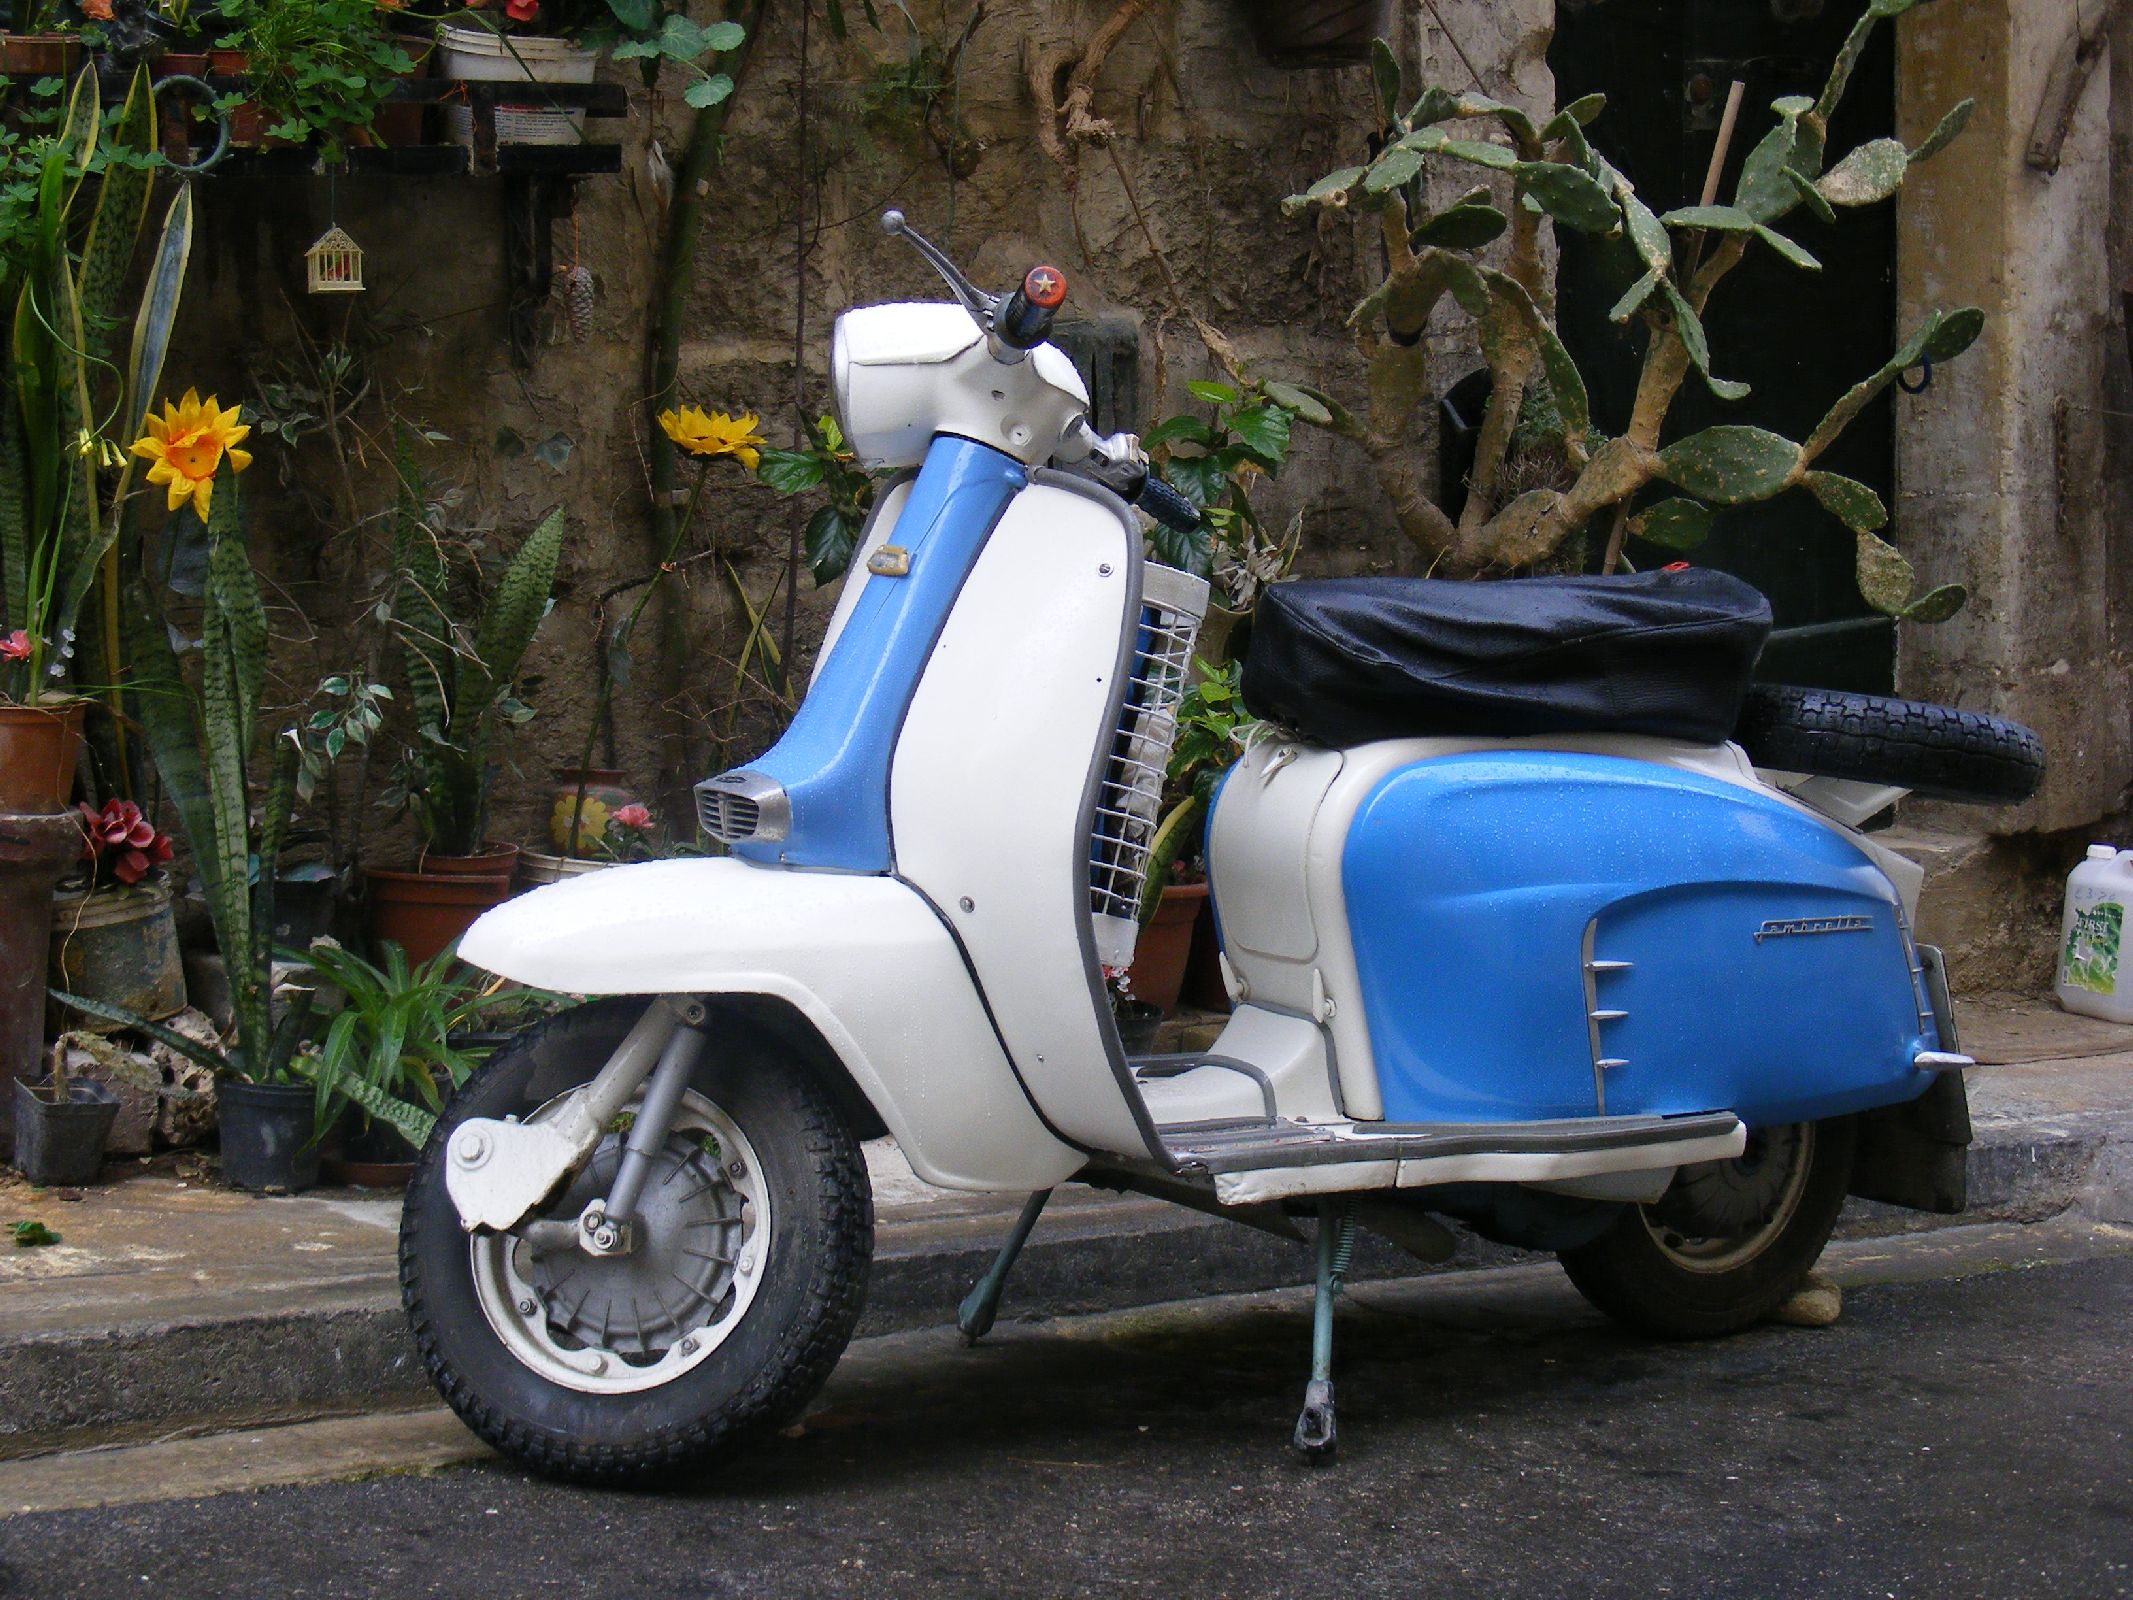 Lambretta Scooter #1